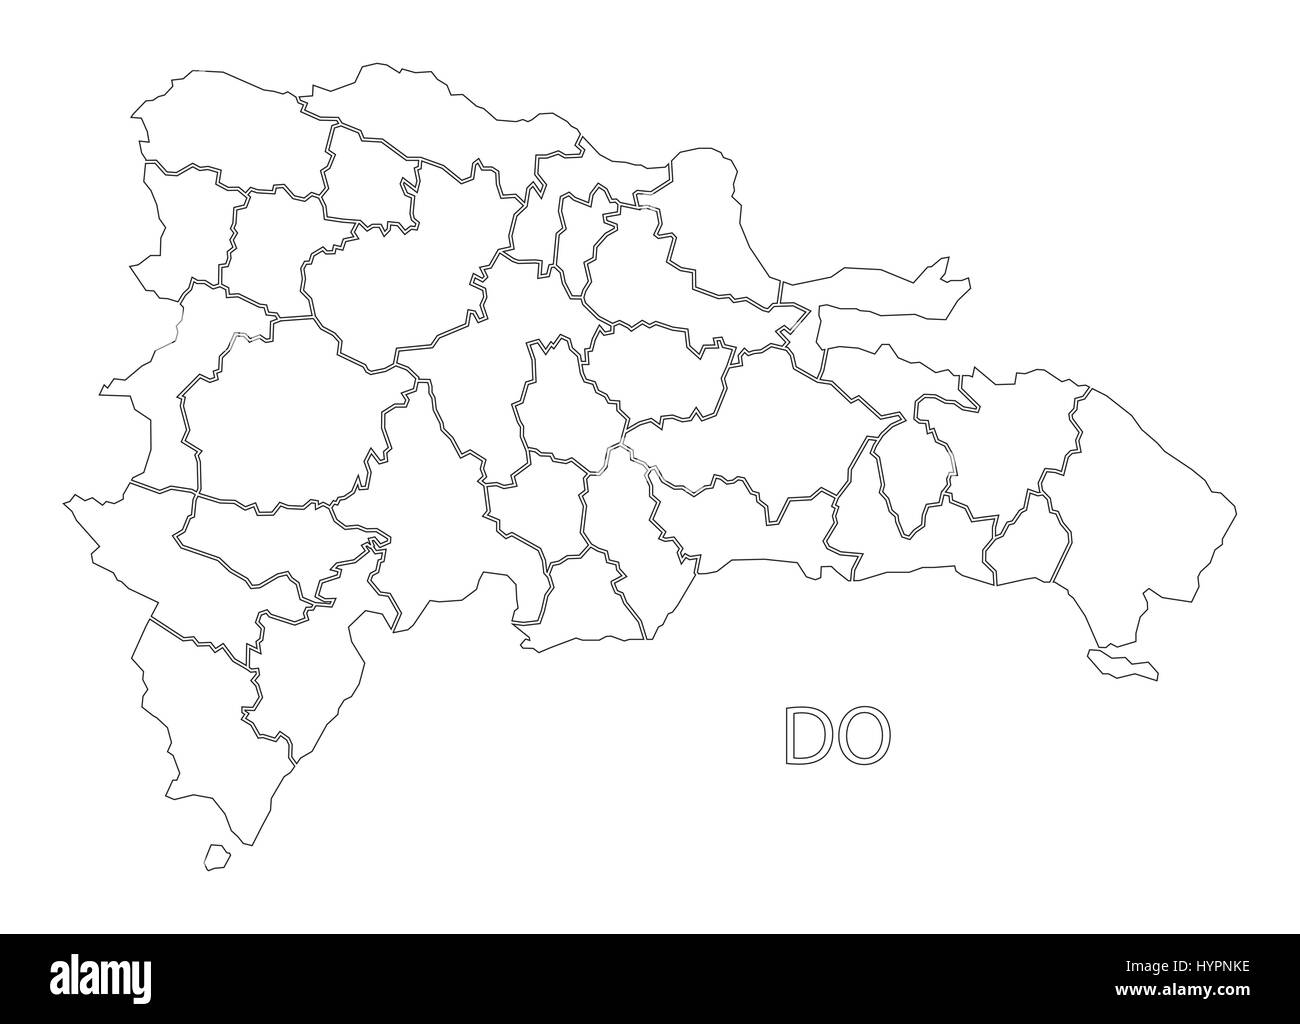 Dominican Republic Outline Silhouette Map Illustration With - Dominican republic map vector